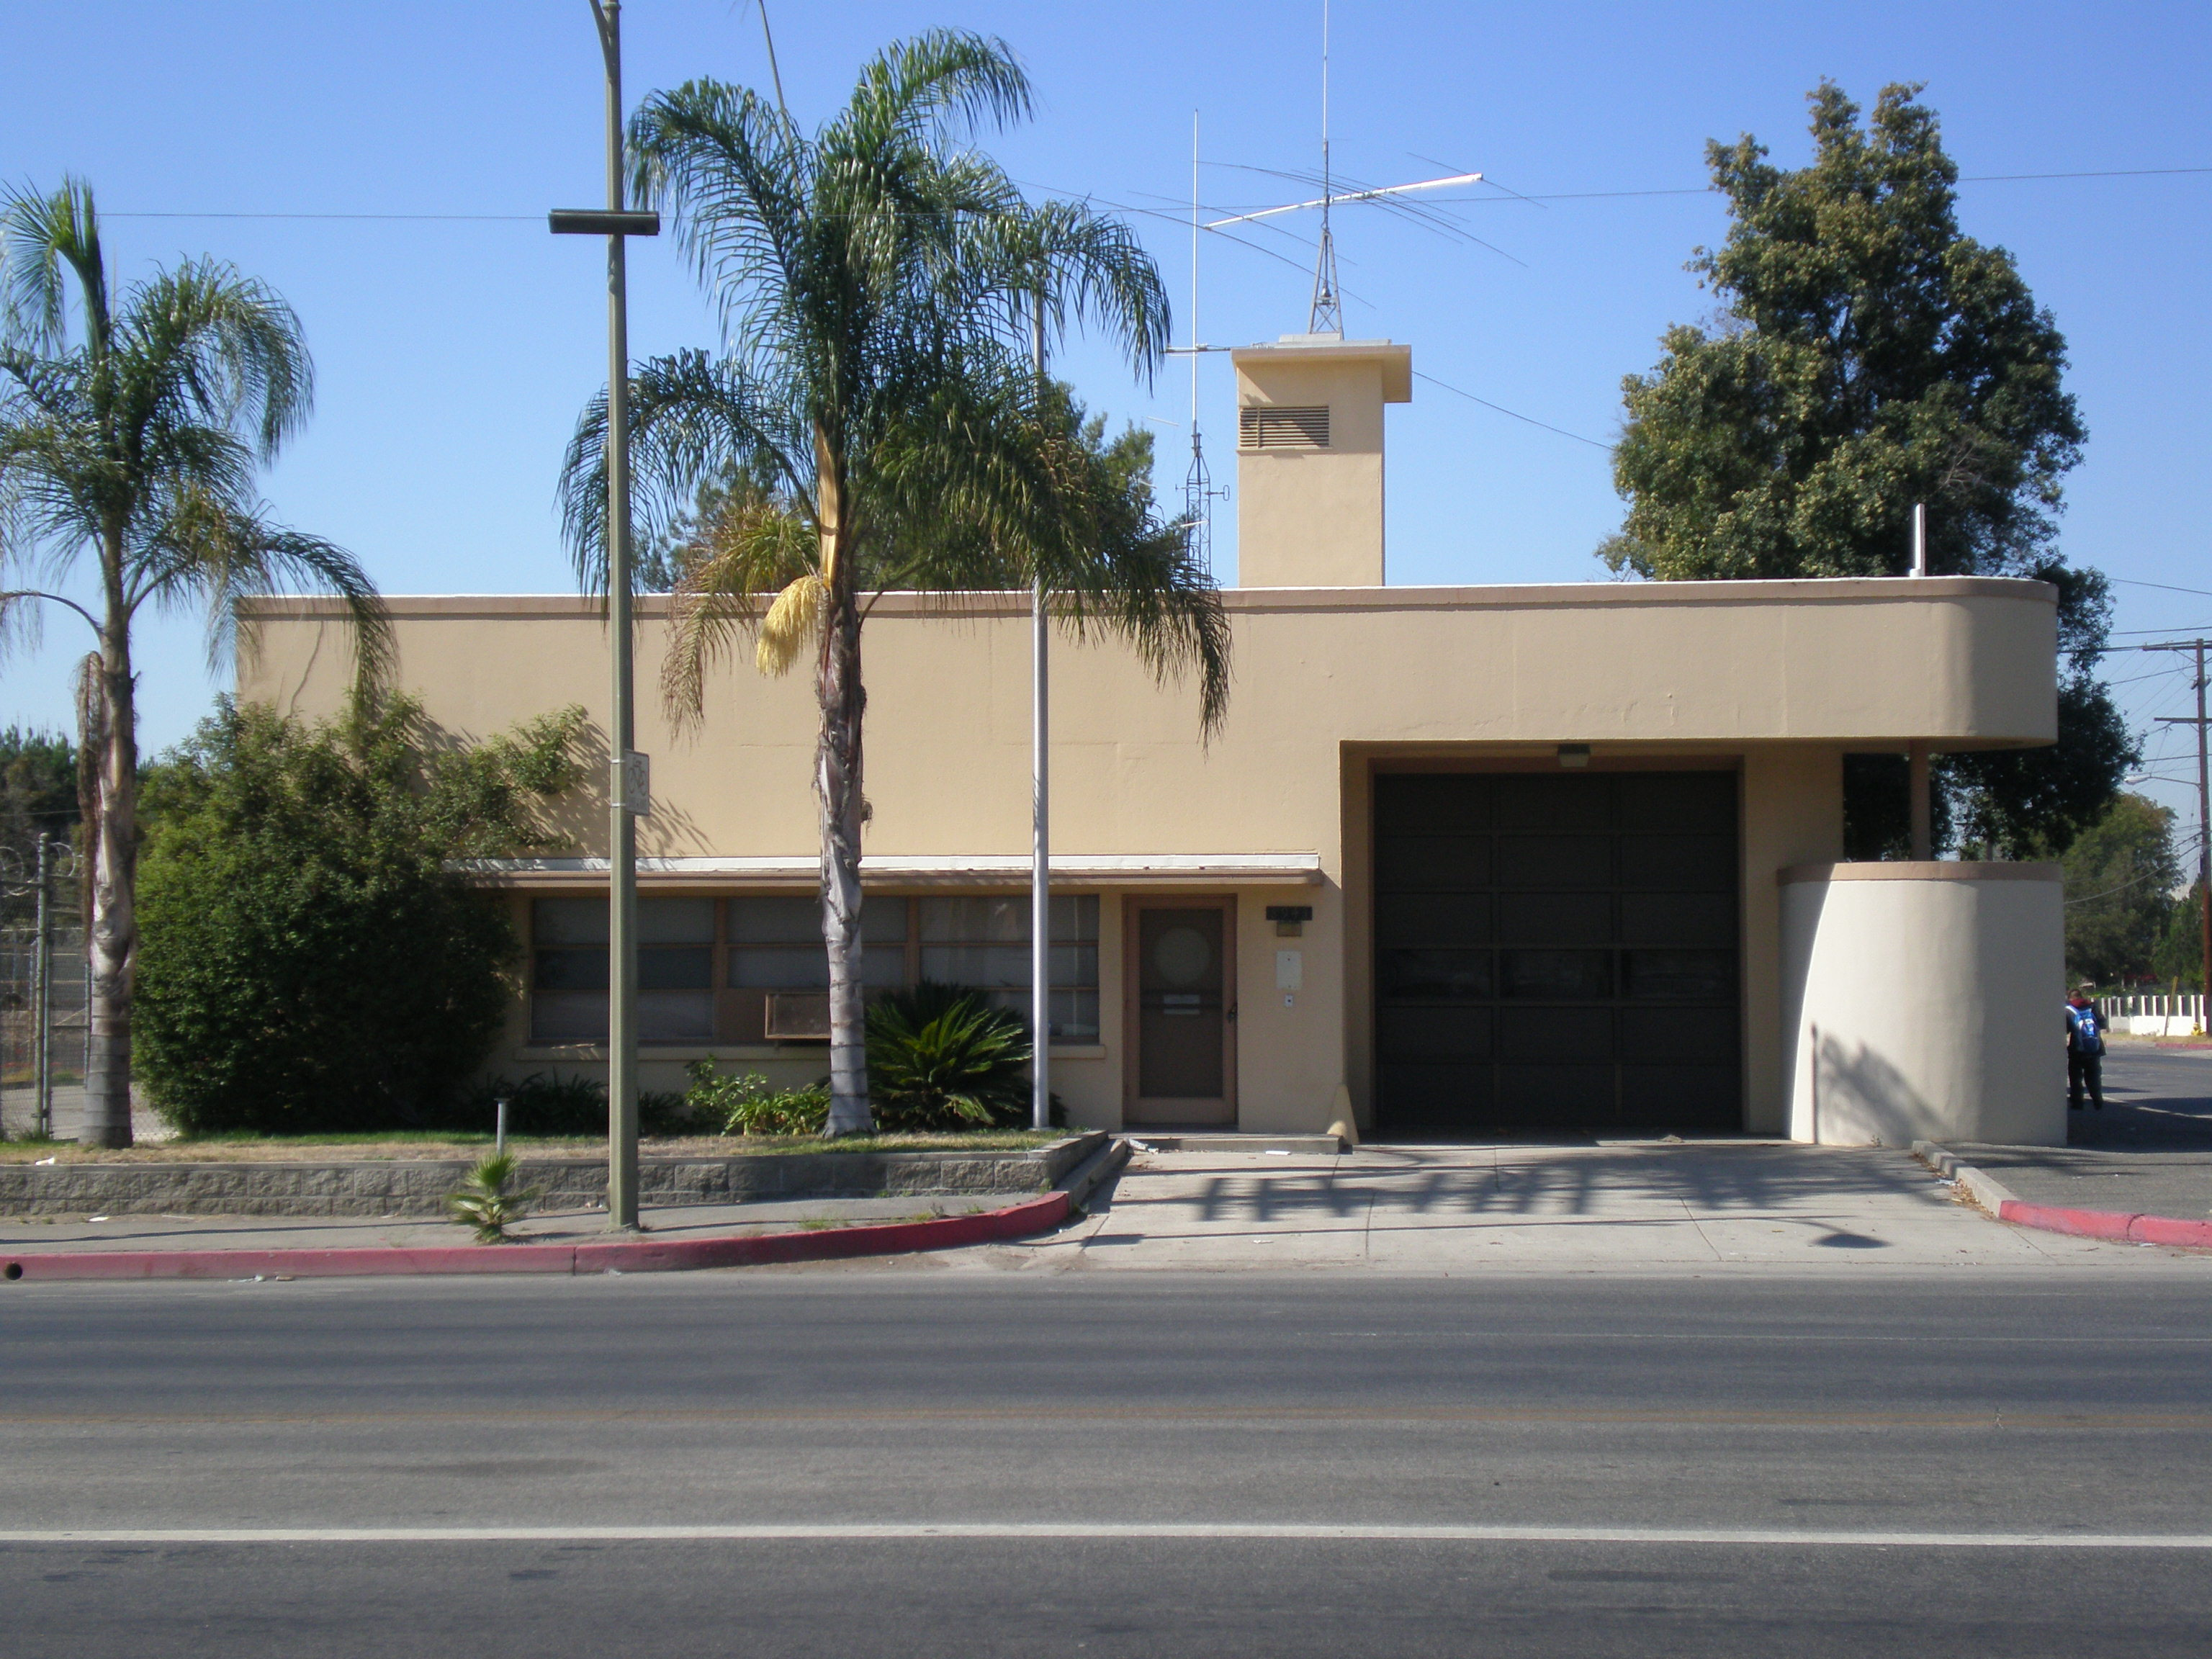 File:LAFD Old Station - 77 JPG - Wikimedia Commons